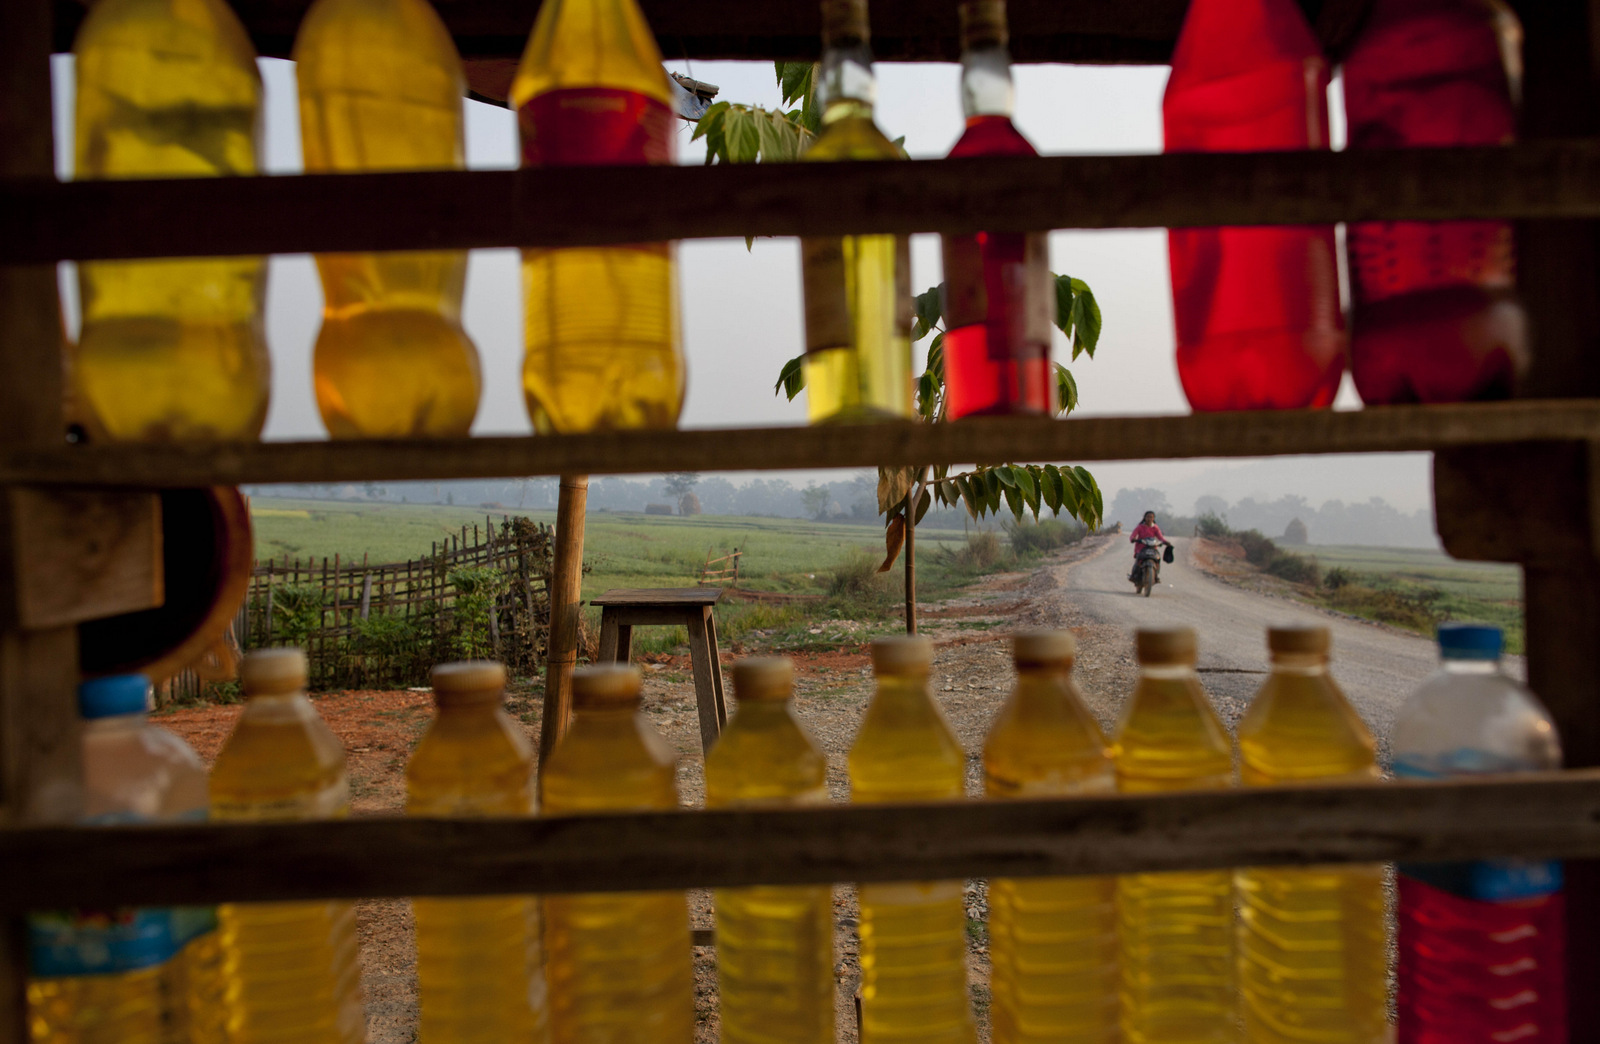 Gasoline filled in to plastic bottles are on display at a roadside shop in Mong Pan, Northern Shan estate, Myanmar. Myanmar put over 20 offshore oil and gas exploration blocks up for auction as the country pushed to attract foreign investment. (AP/Gemunu Amarasinghe)